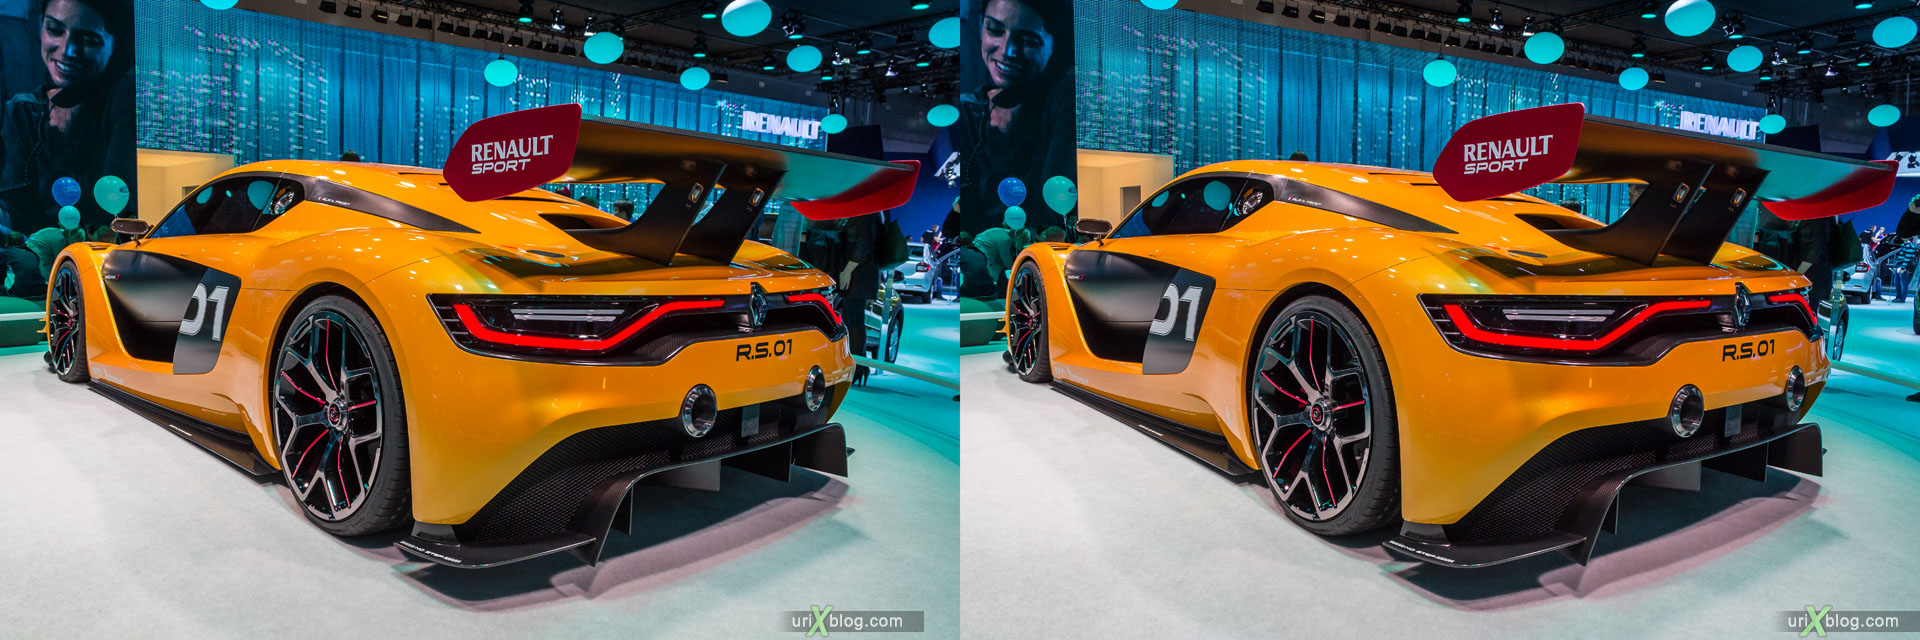 Renault R.S.01, Moscow International Automobile Salon 2014, MIAS 2014, girls, models, Crocus Expo, Moscow, Russia, 3D, stereo pair, cross-eyed, crossview, cross view stereo pair, stereoscopic, 2014